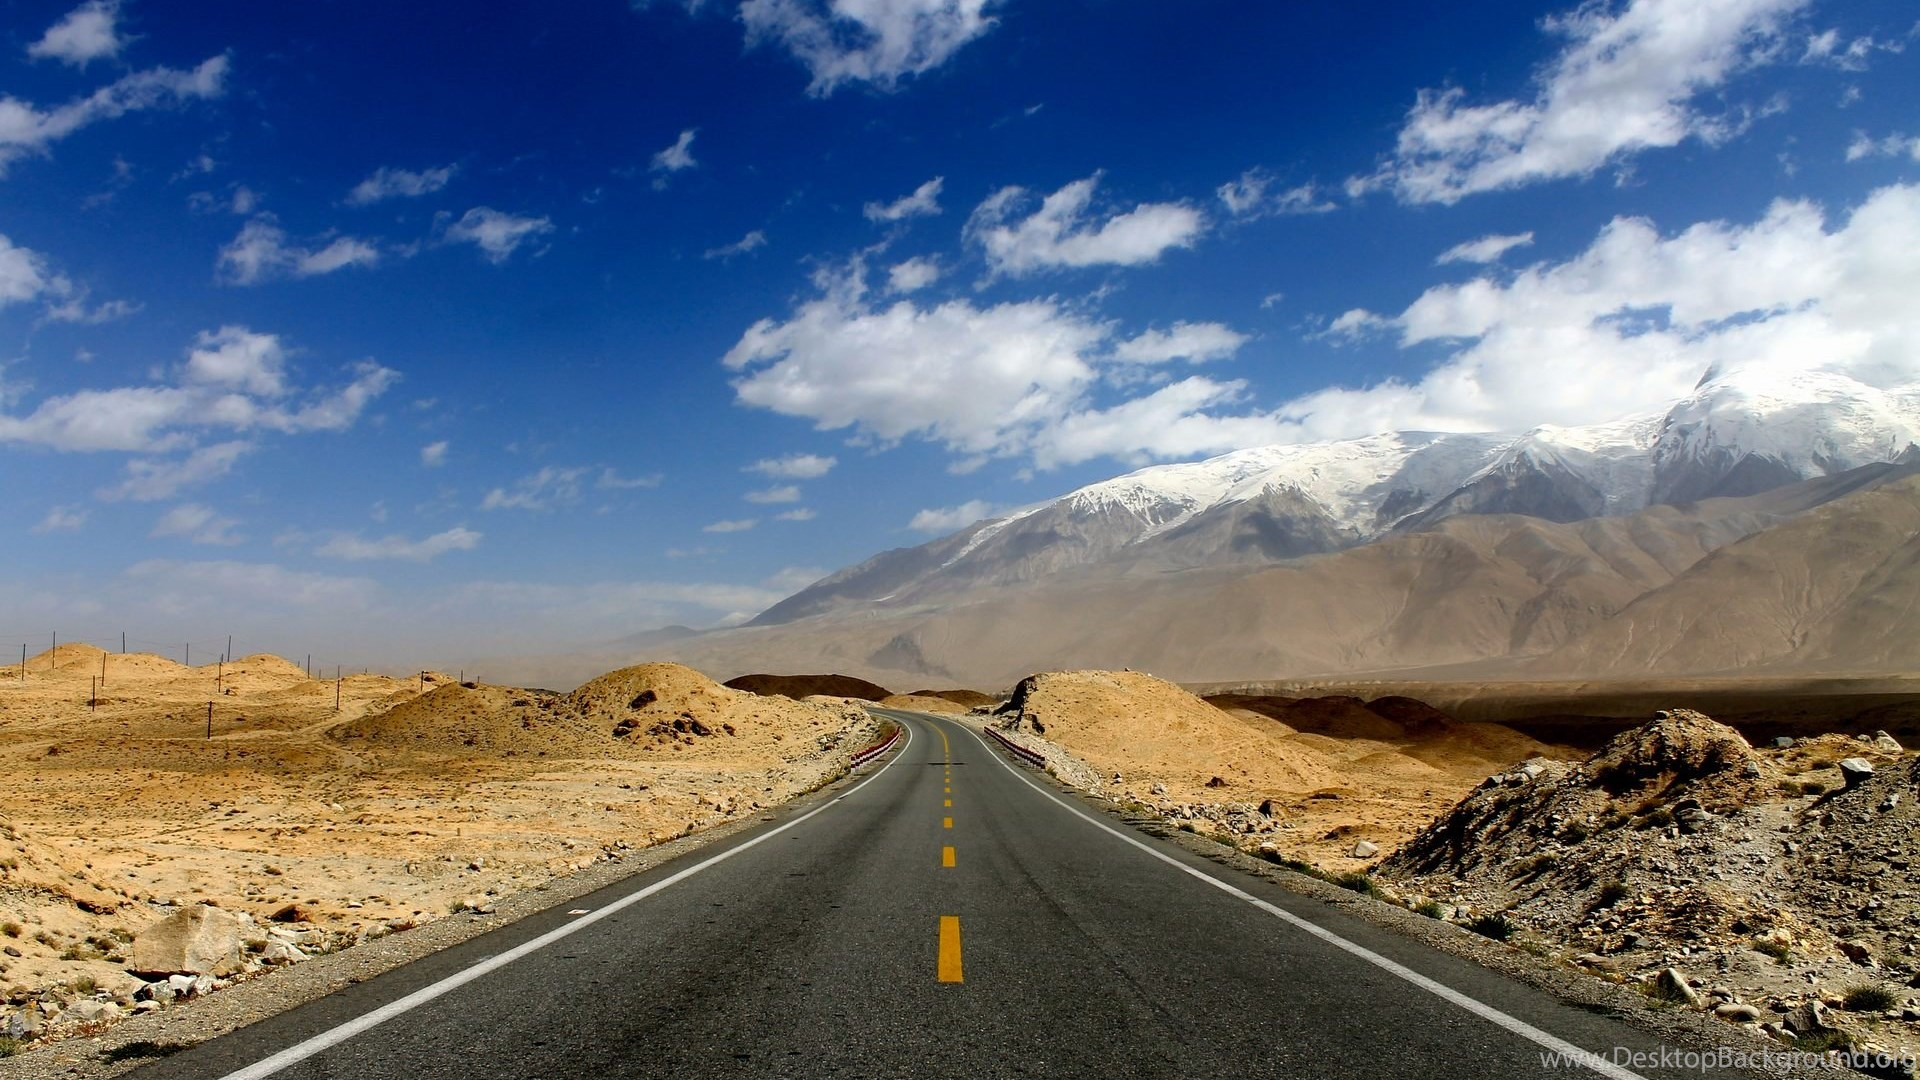 1044680_karakoram-highway-pakistan-china-road-wallpapers-hd_1920x1200_h